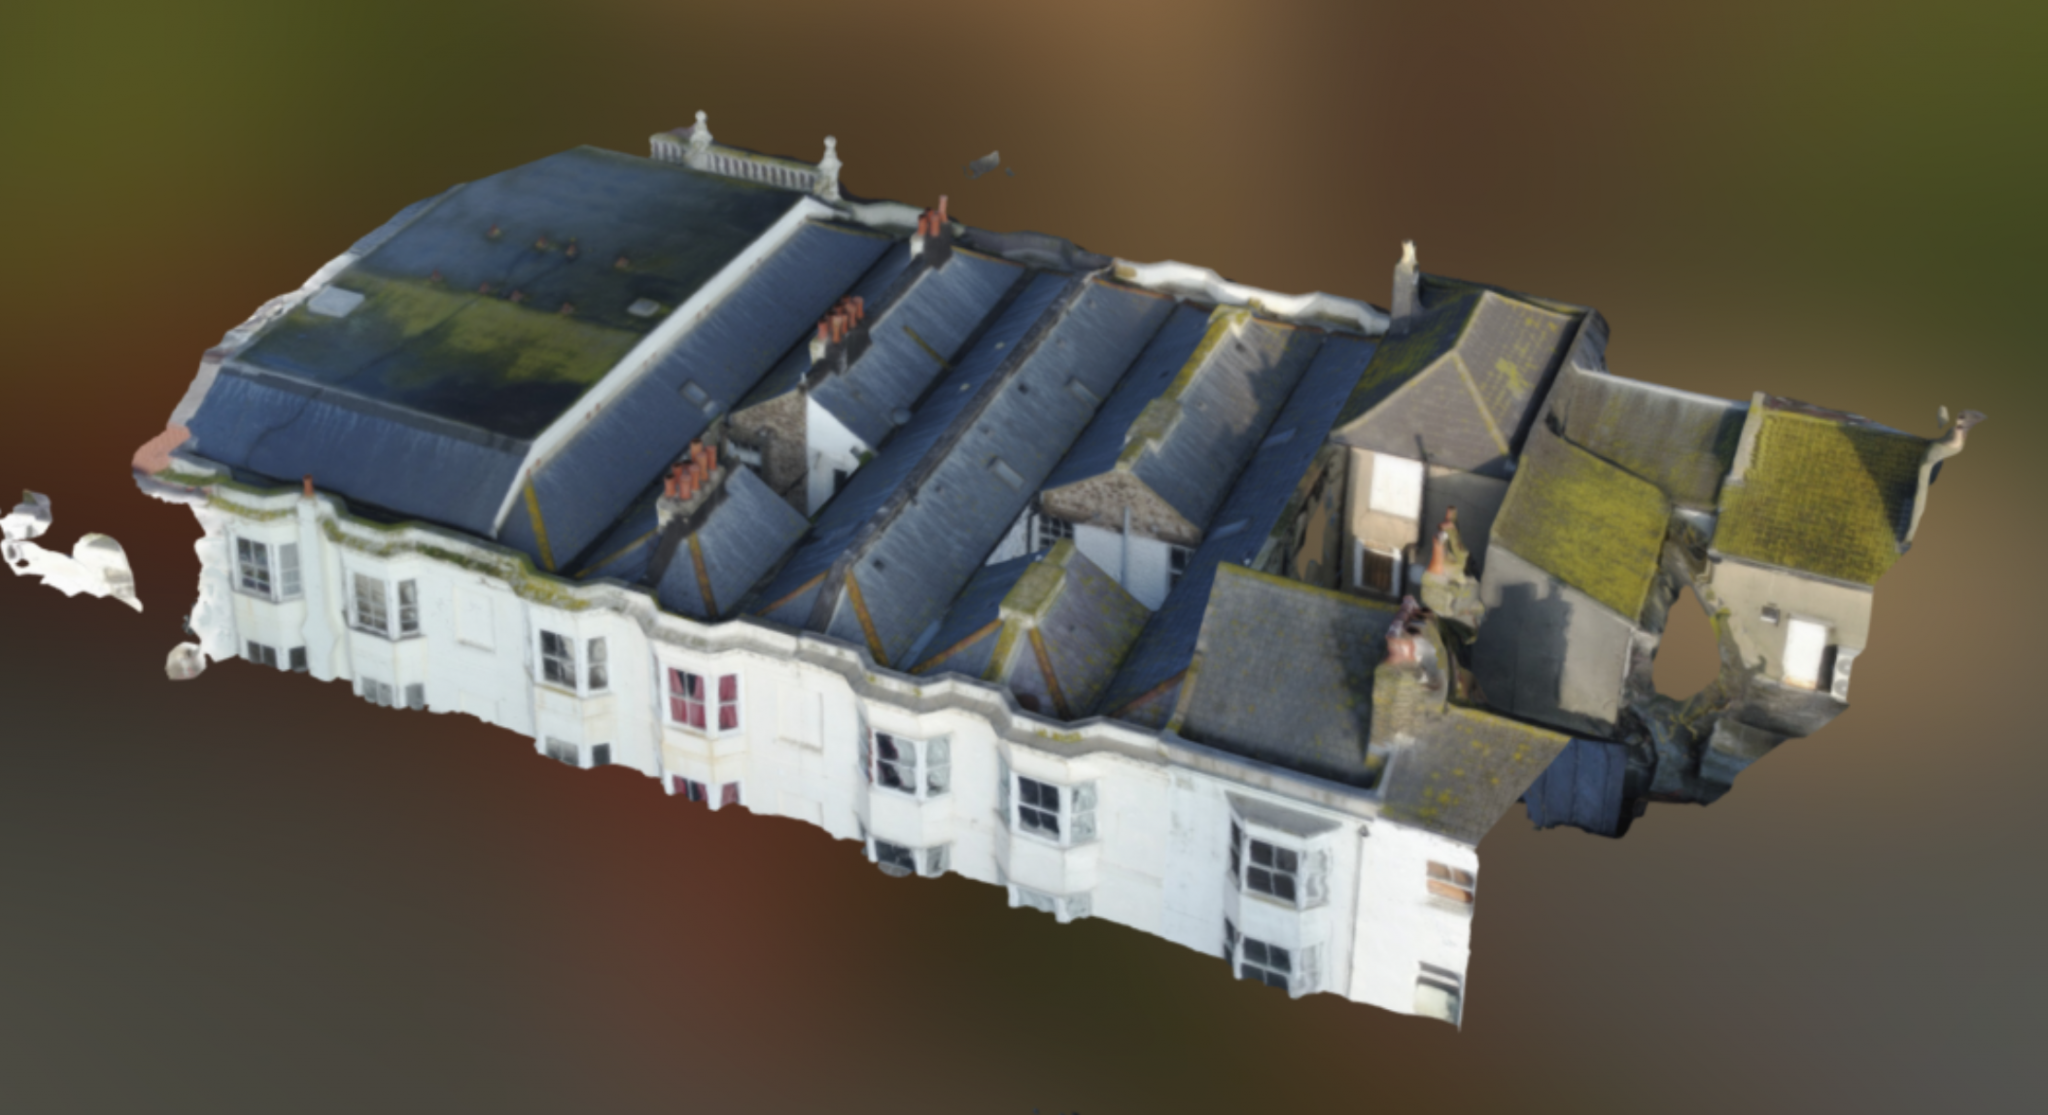 Gaysha commissions first Drone roof survey